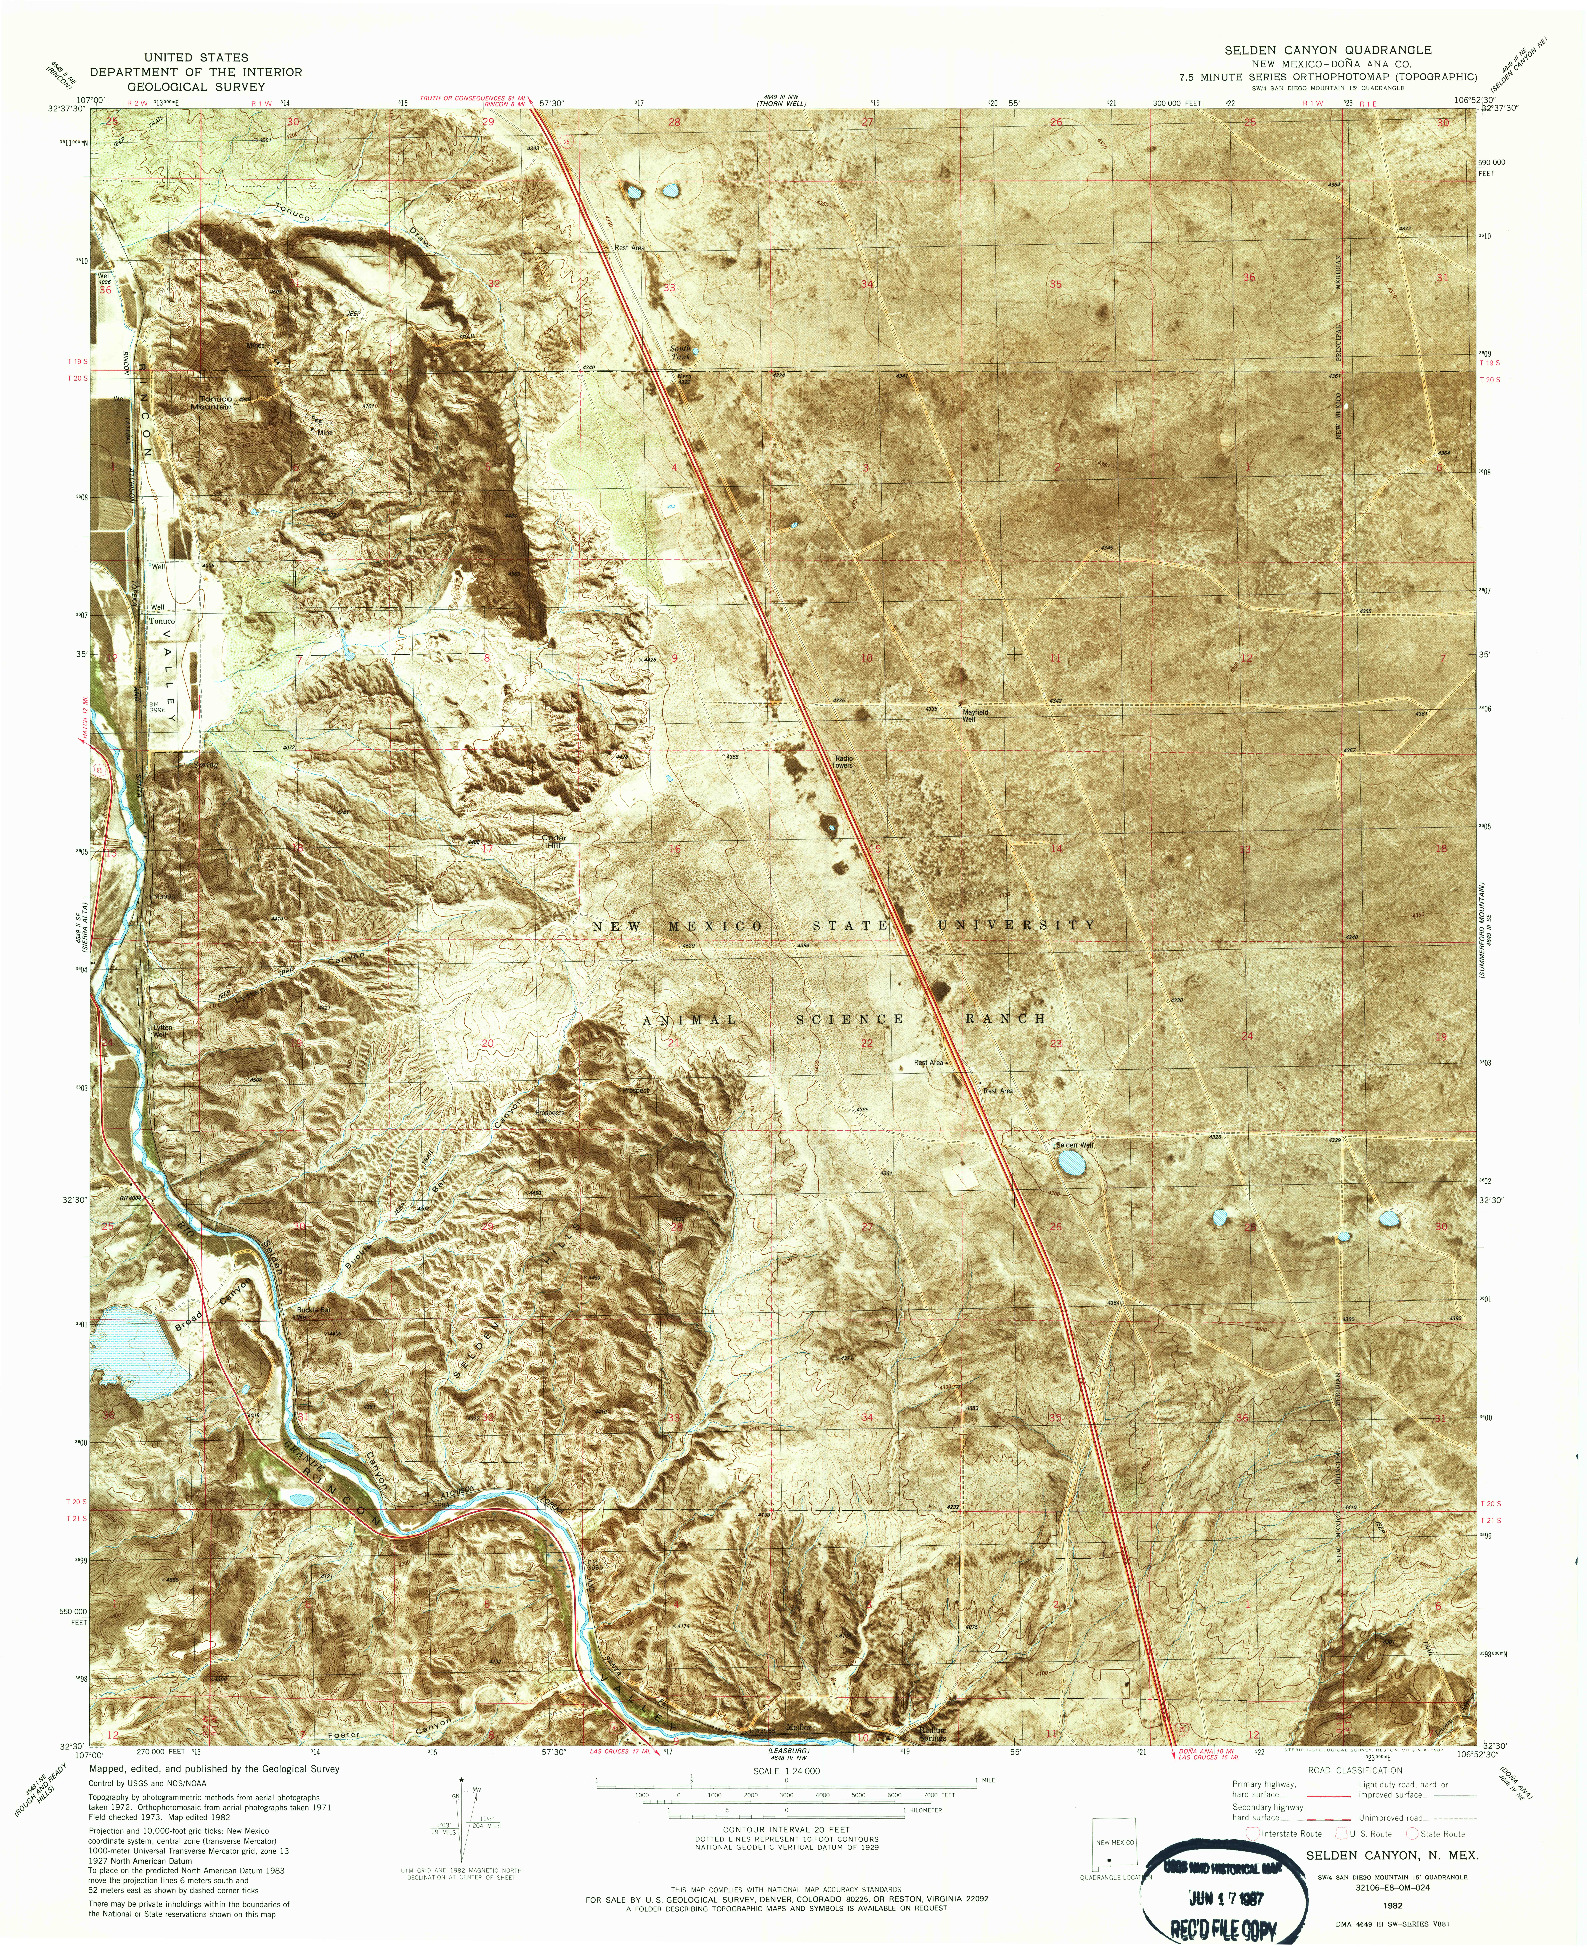 USGS 1:24000-SCALE QUADRANGLE FOR SELDEN CANYON, NM 1982